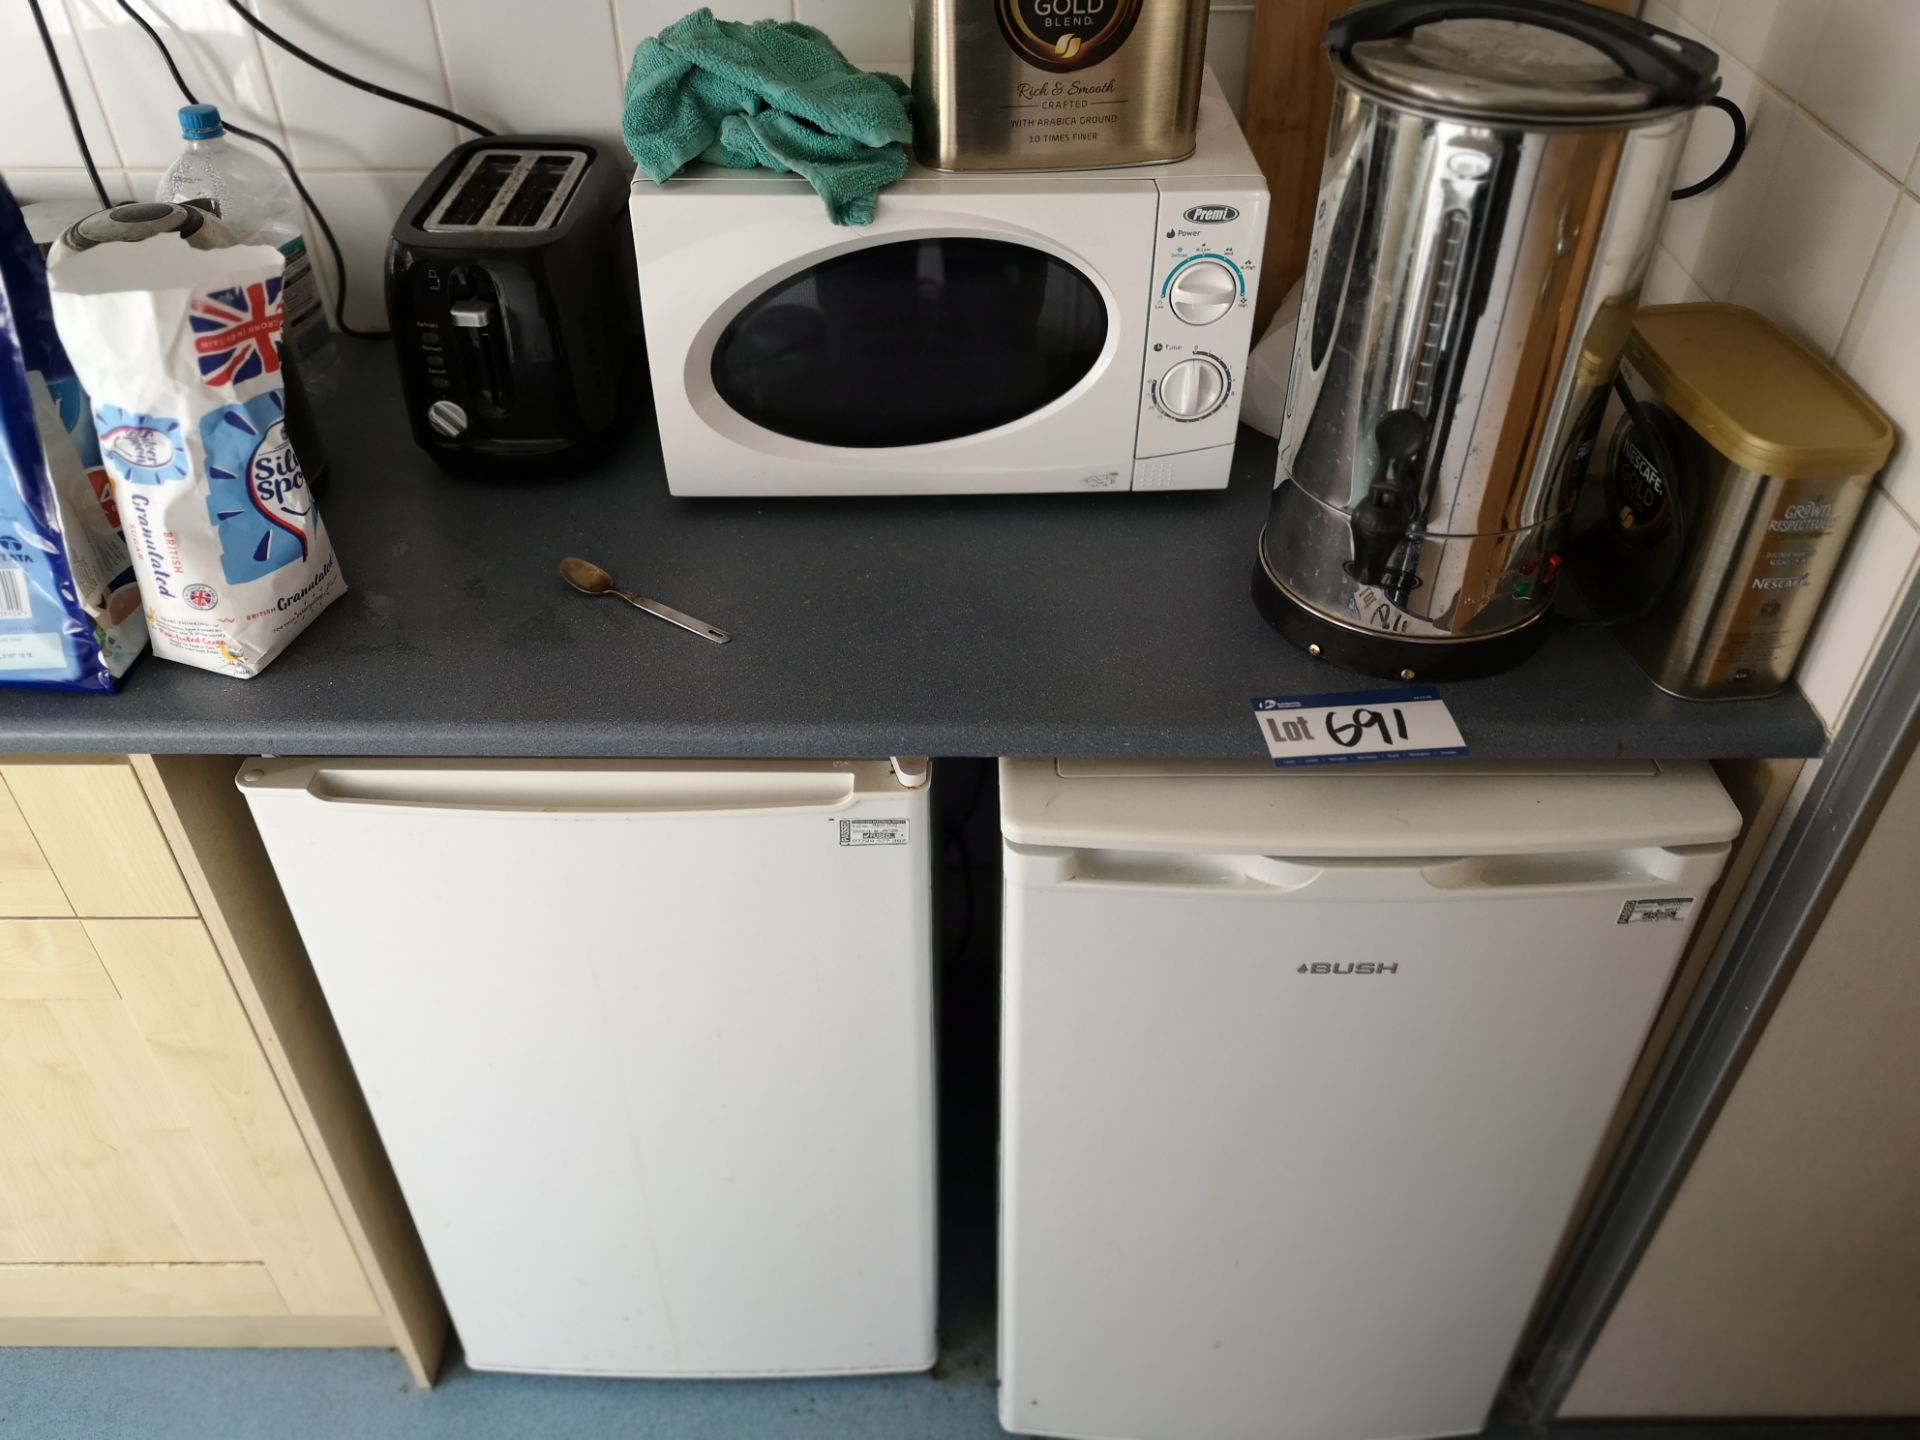 Lot 691 - Toaster, Microwave, Water Boiler & Two Under The C